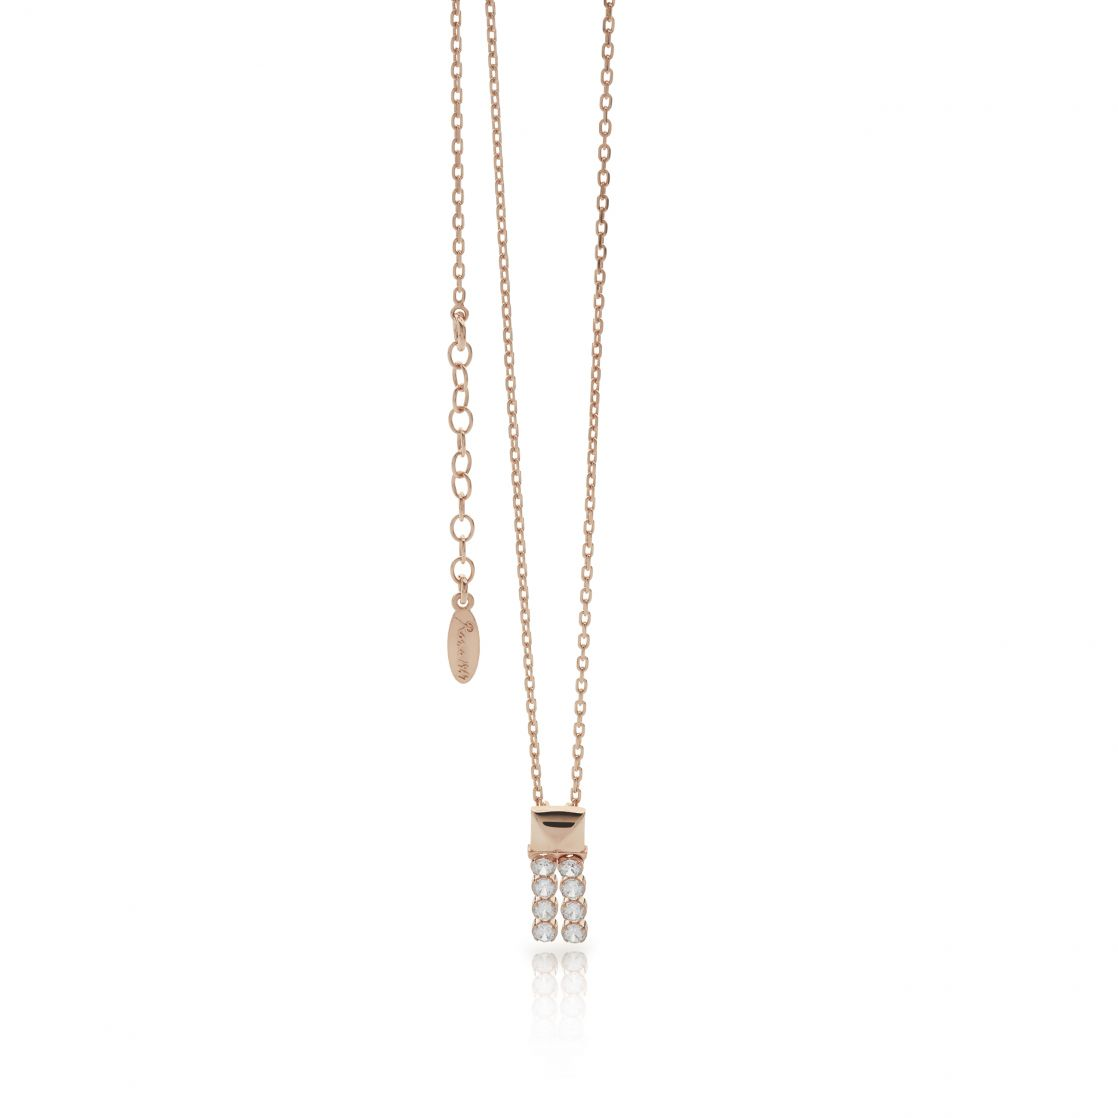 ROCK NECKLACE WITH LITTLE CZ